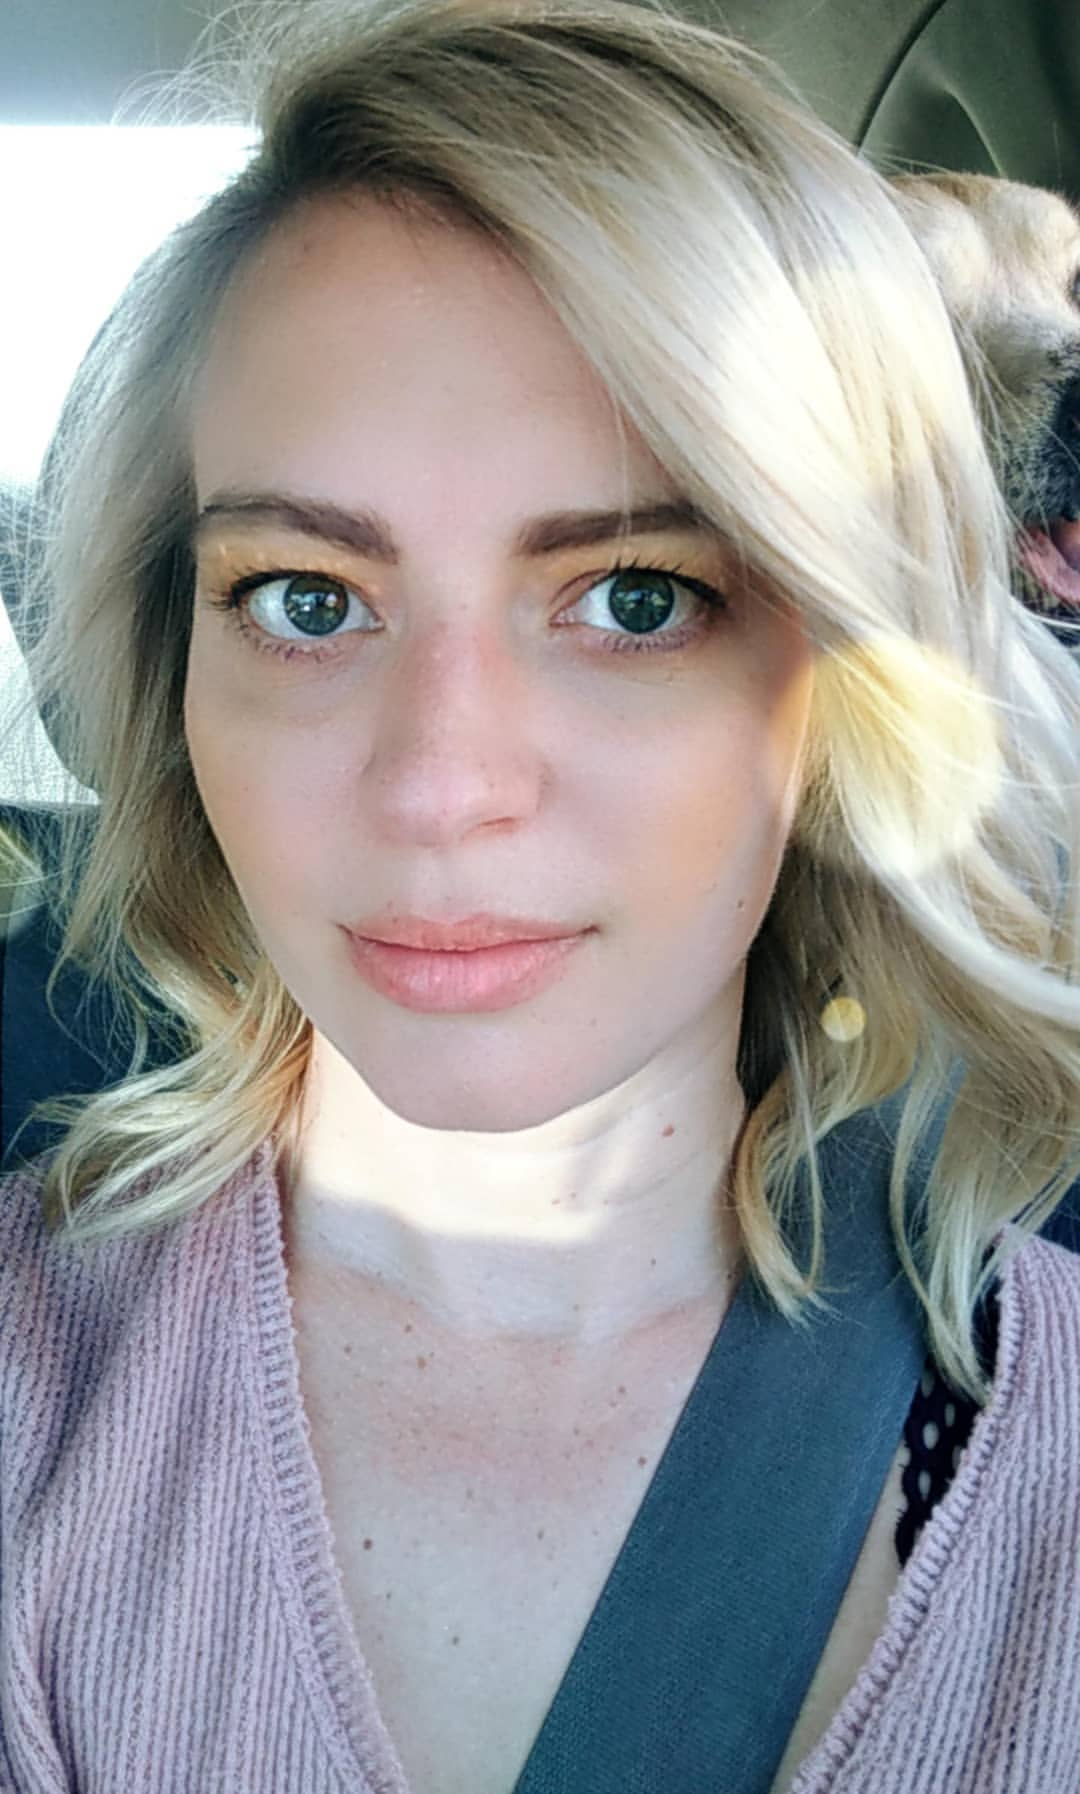 Elyse willems fakes